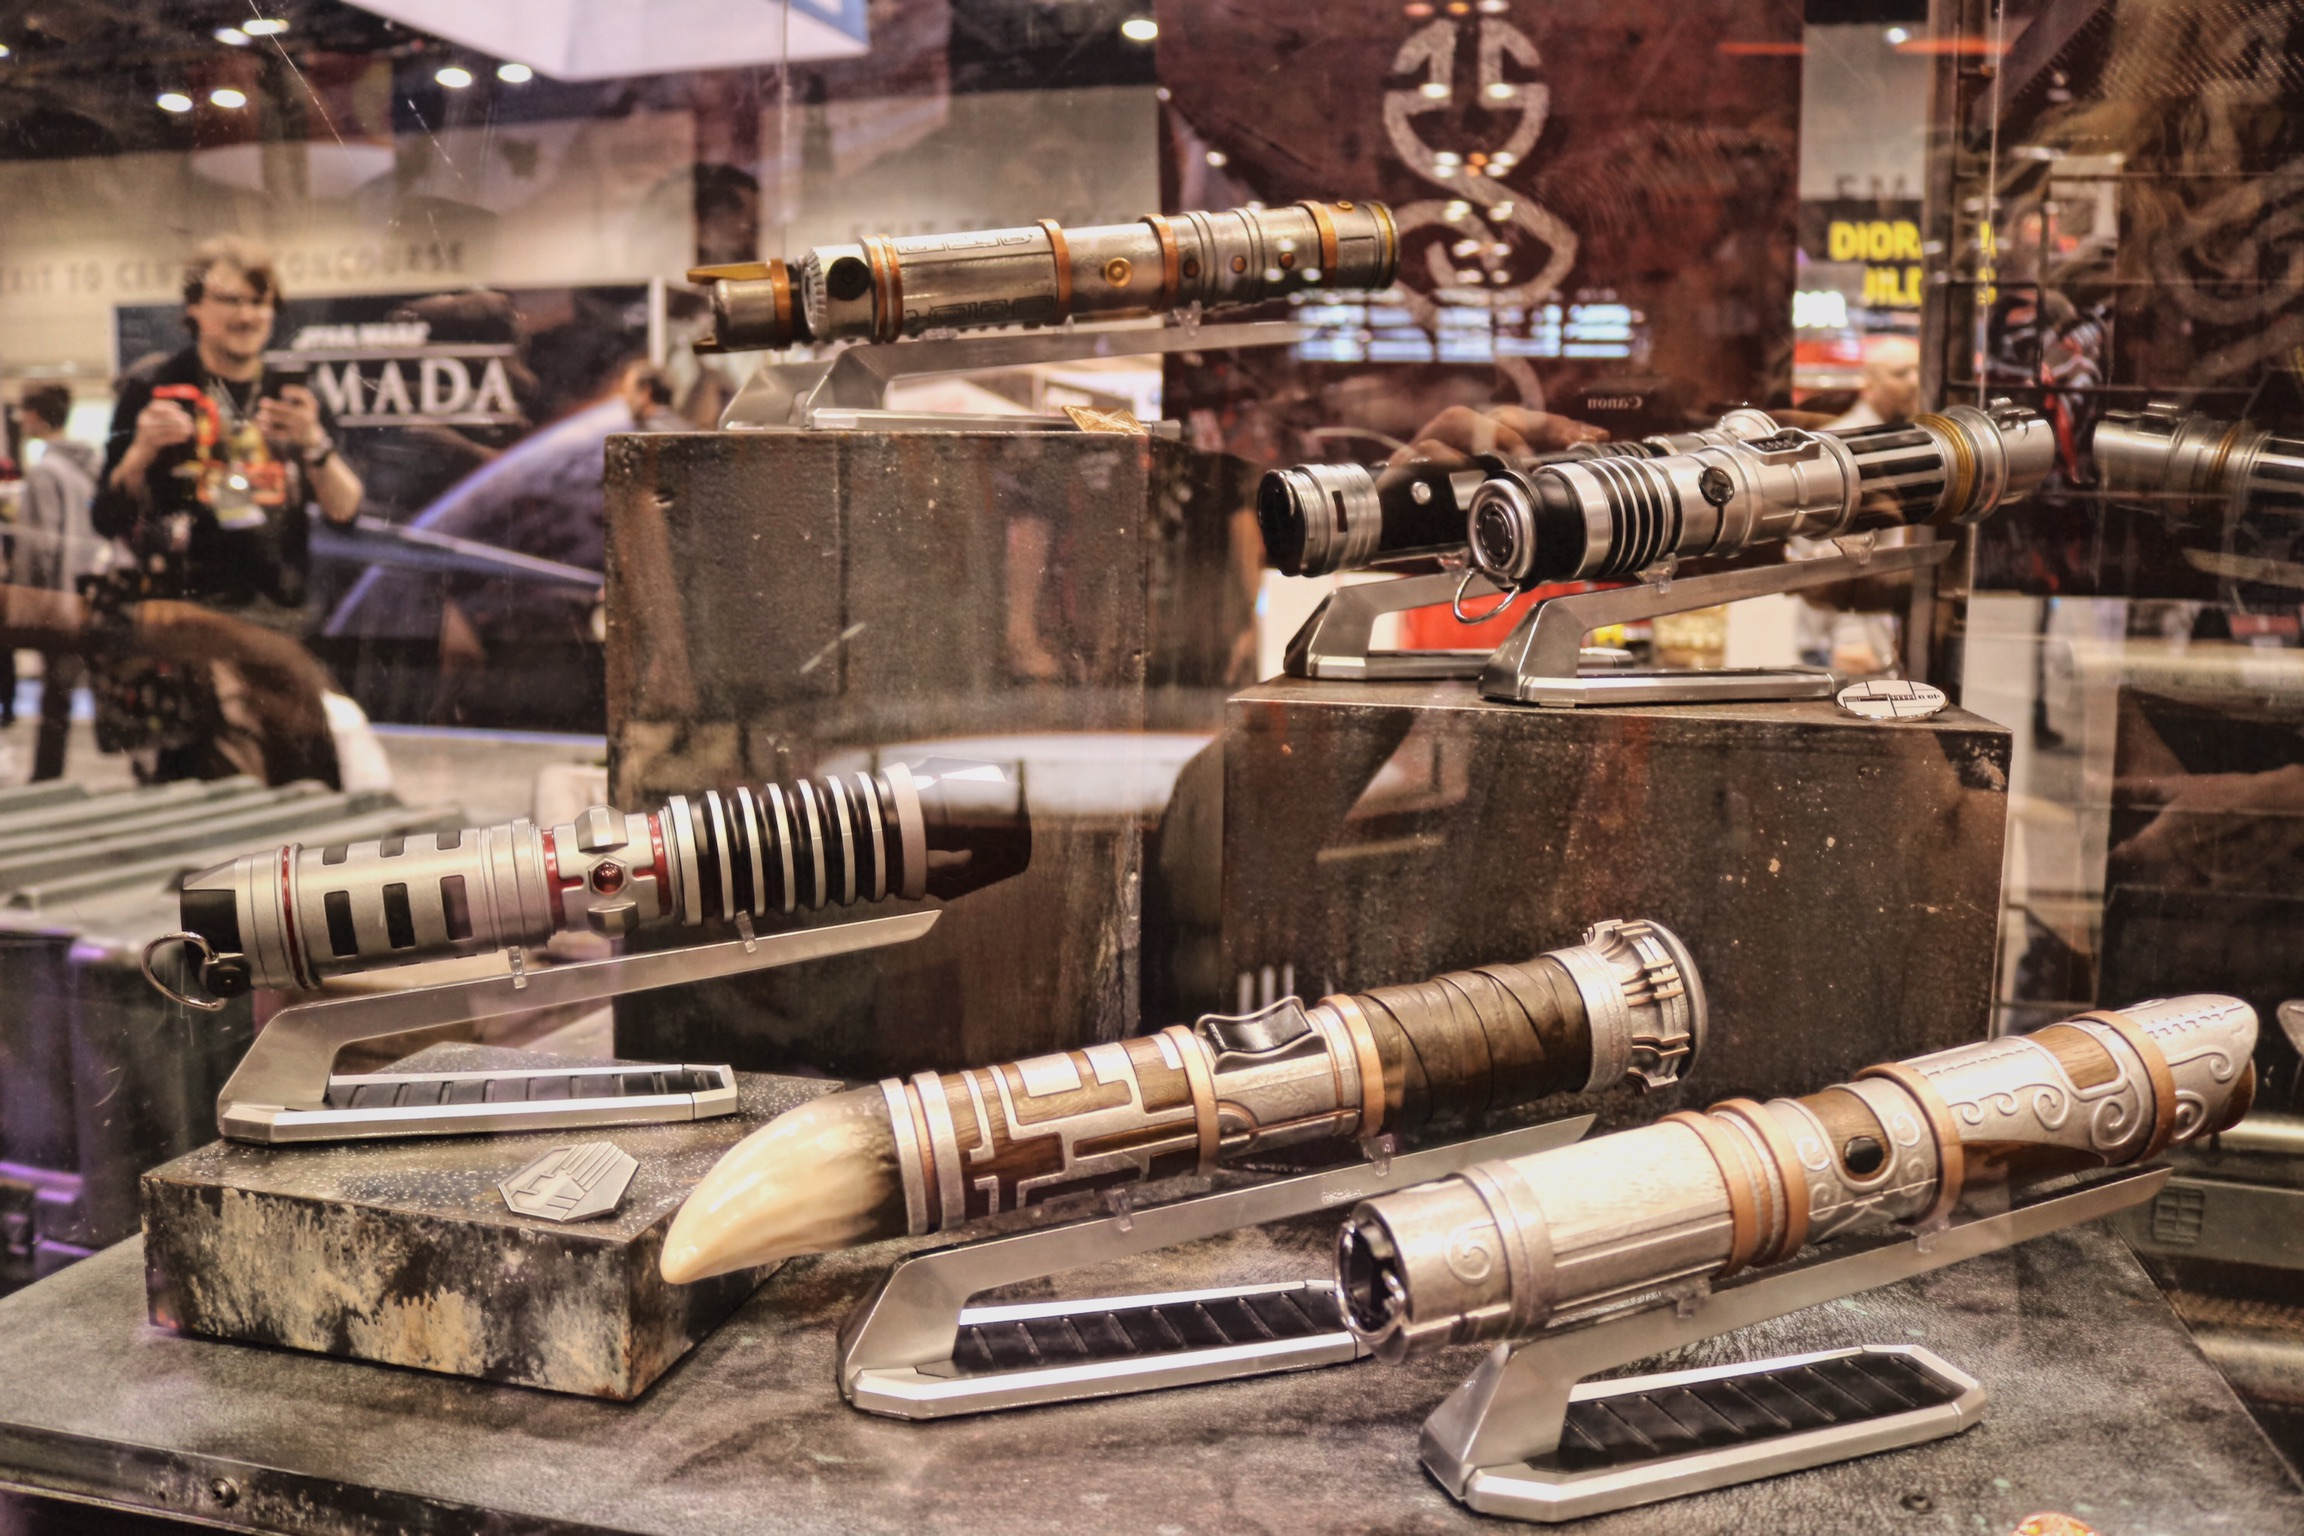 Depending on your chosen path, one of these custom lightsabers can be yours.